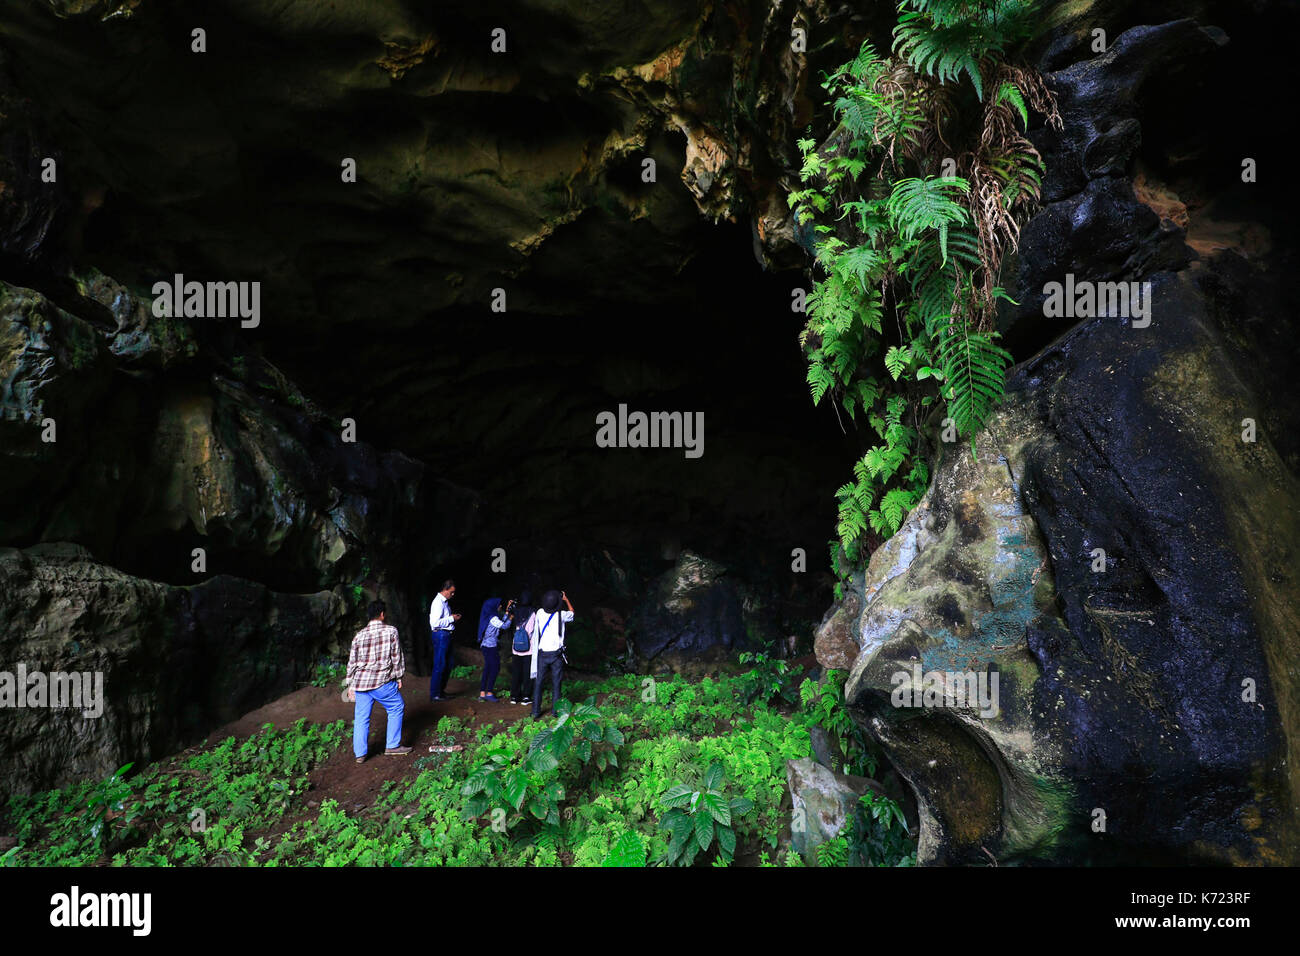 Aceh, Indonesia. 13th Sep, 2017. Geophysicists observe a natural limestone cave located at Lhoong district in Aceh, Stock Photo